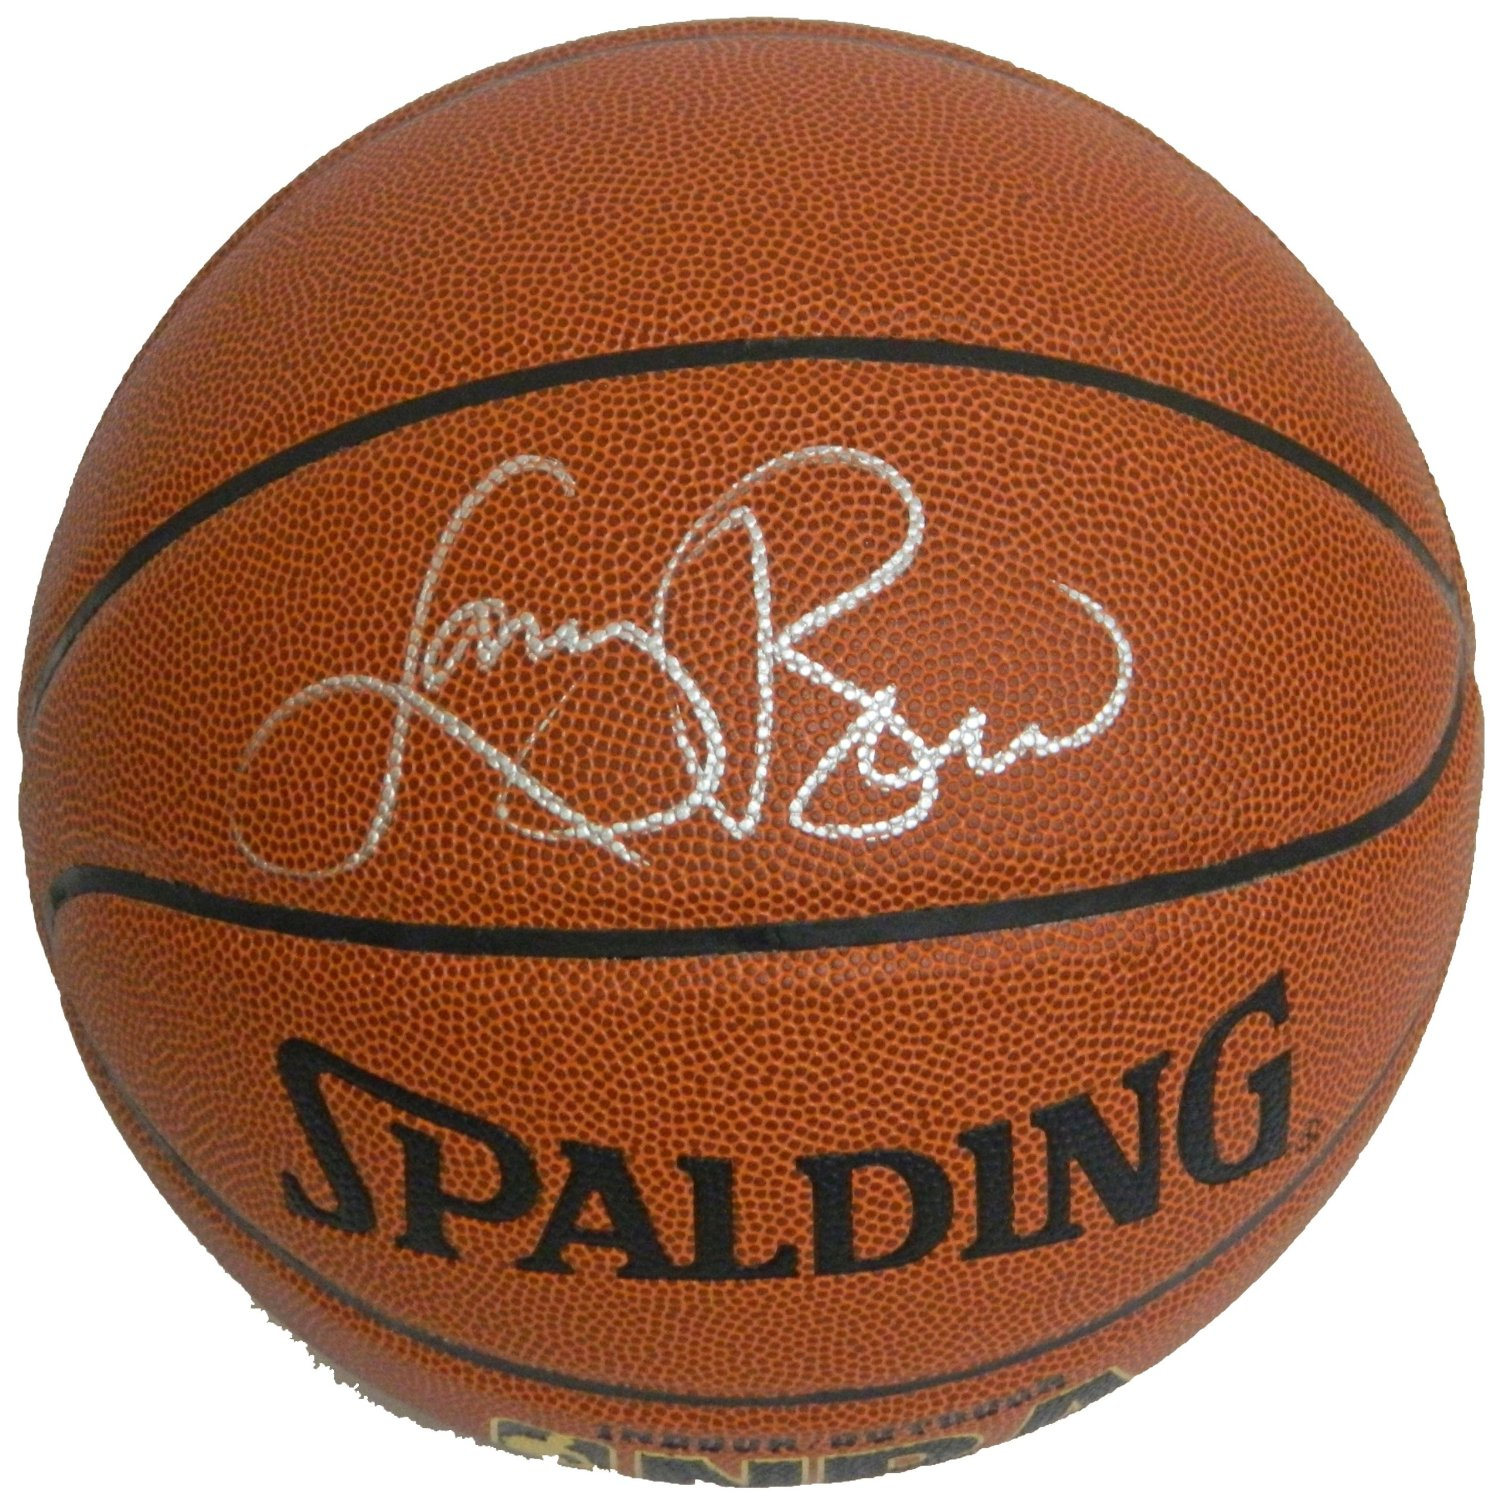 Larry Bird Autographed Spalding Ball